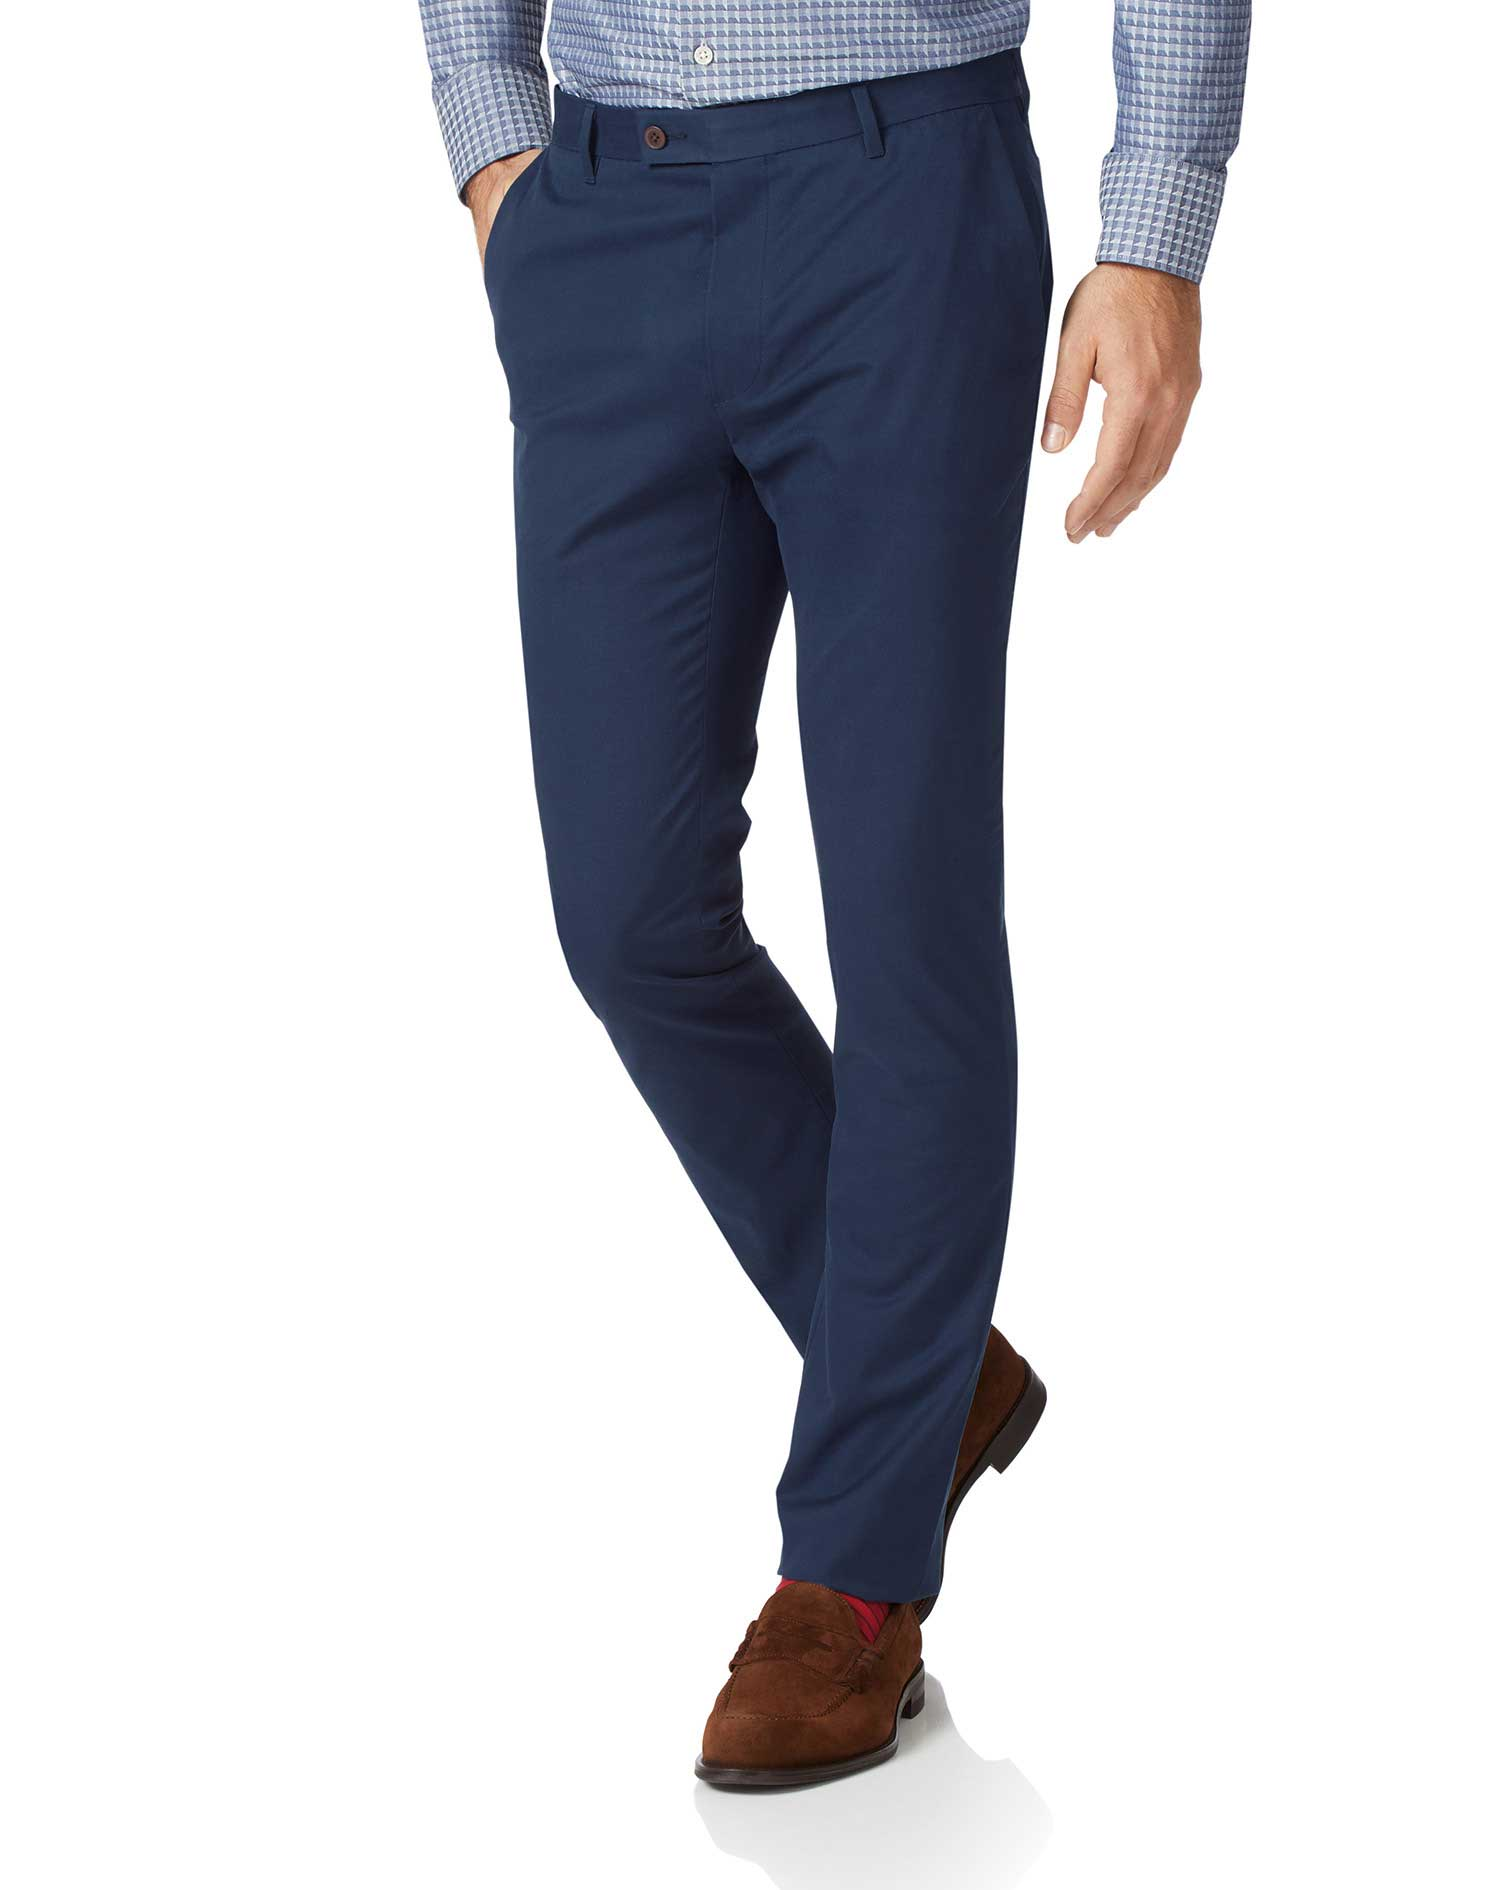 Dark Blue Extra Slim Fit Stretch Cotton Chino Trousers Size W36 L30 by Charles Tyrwhitt